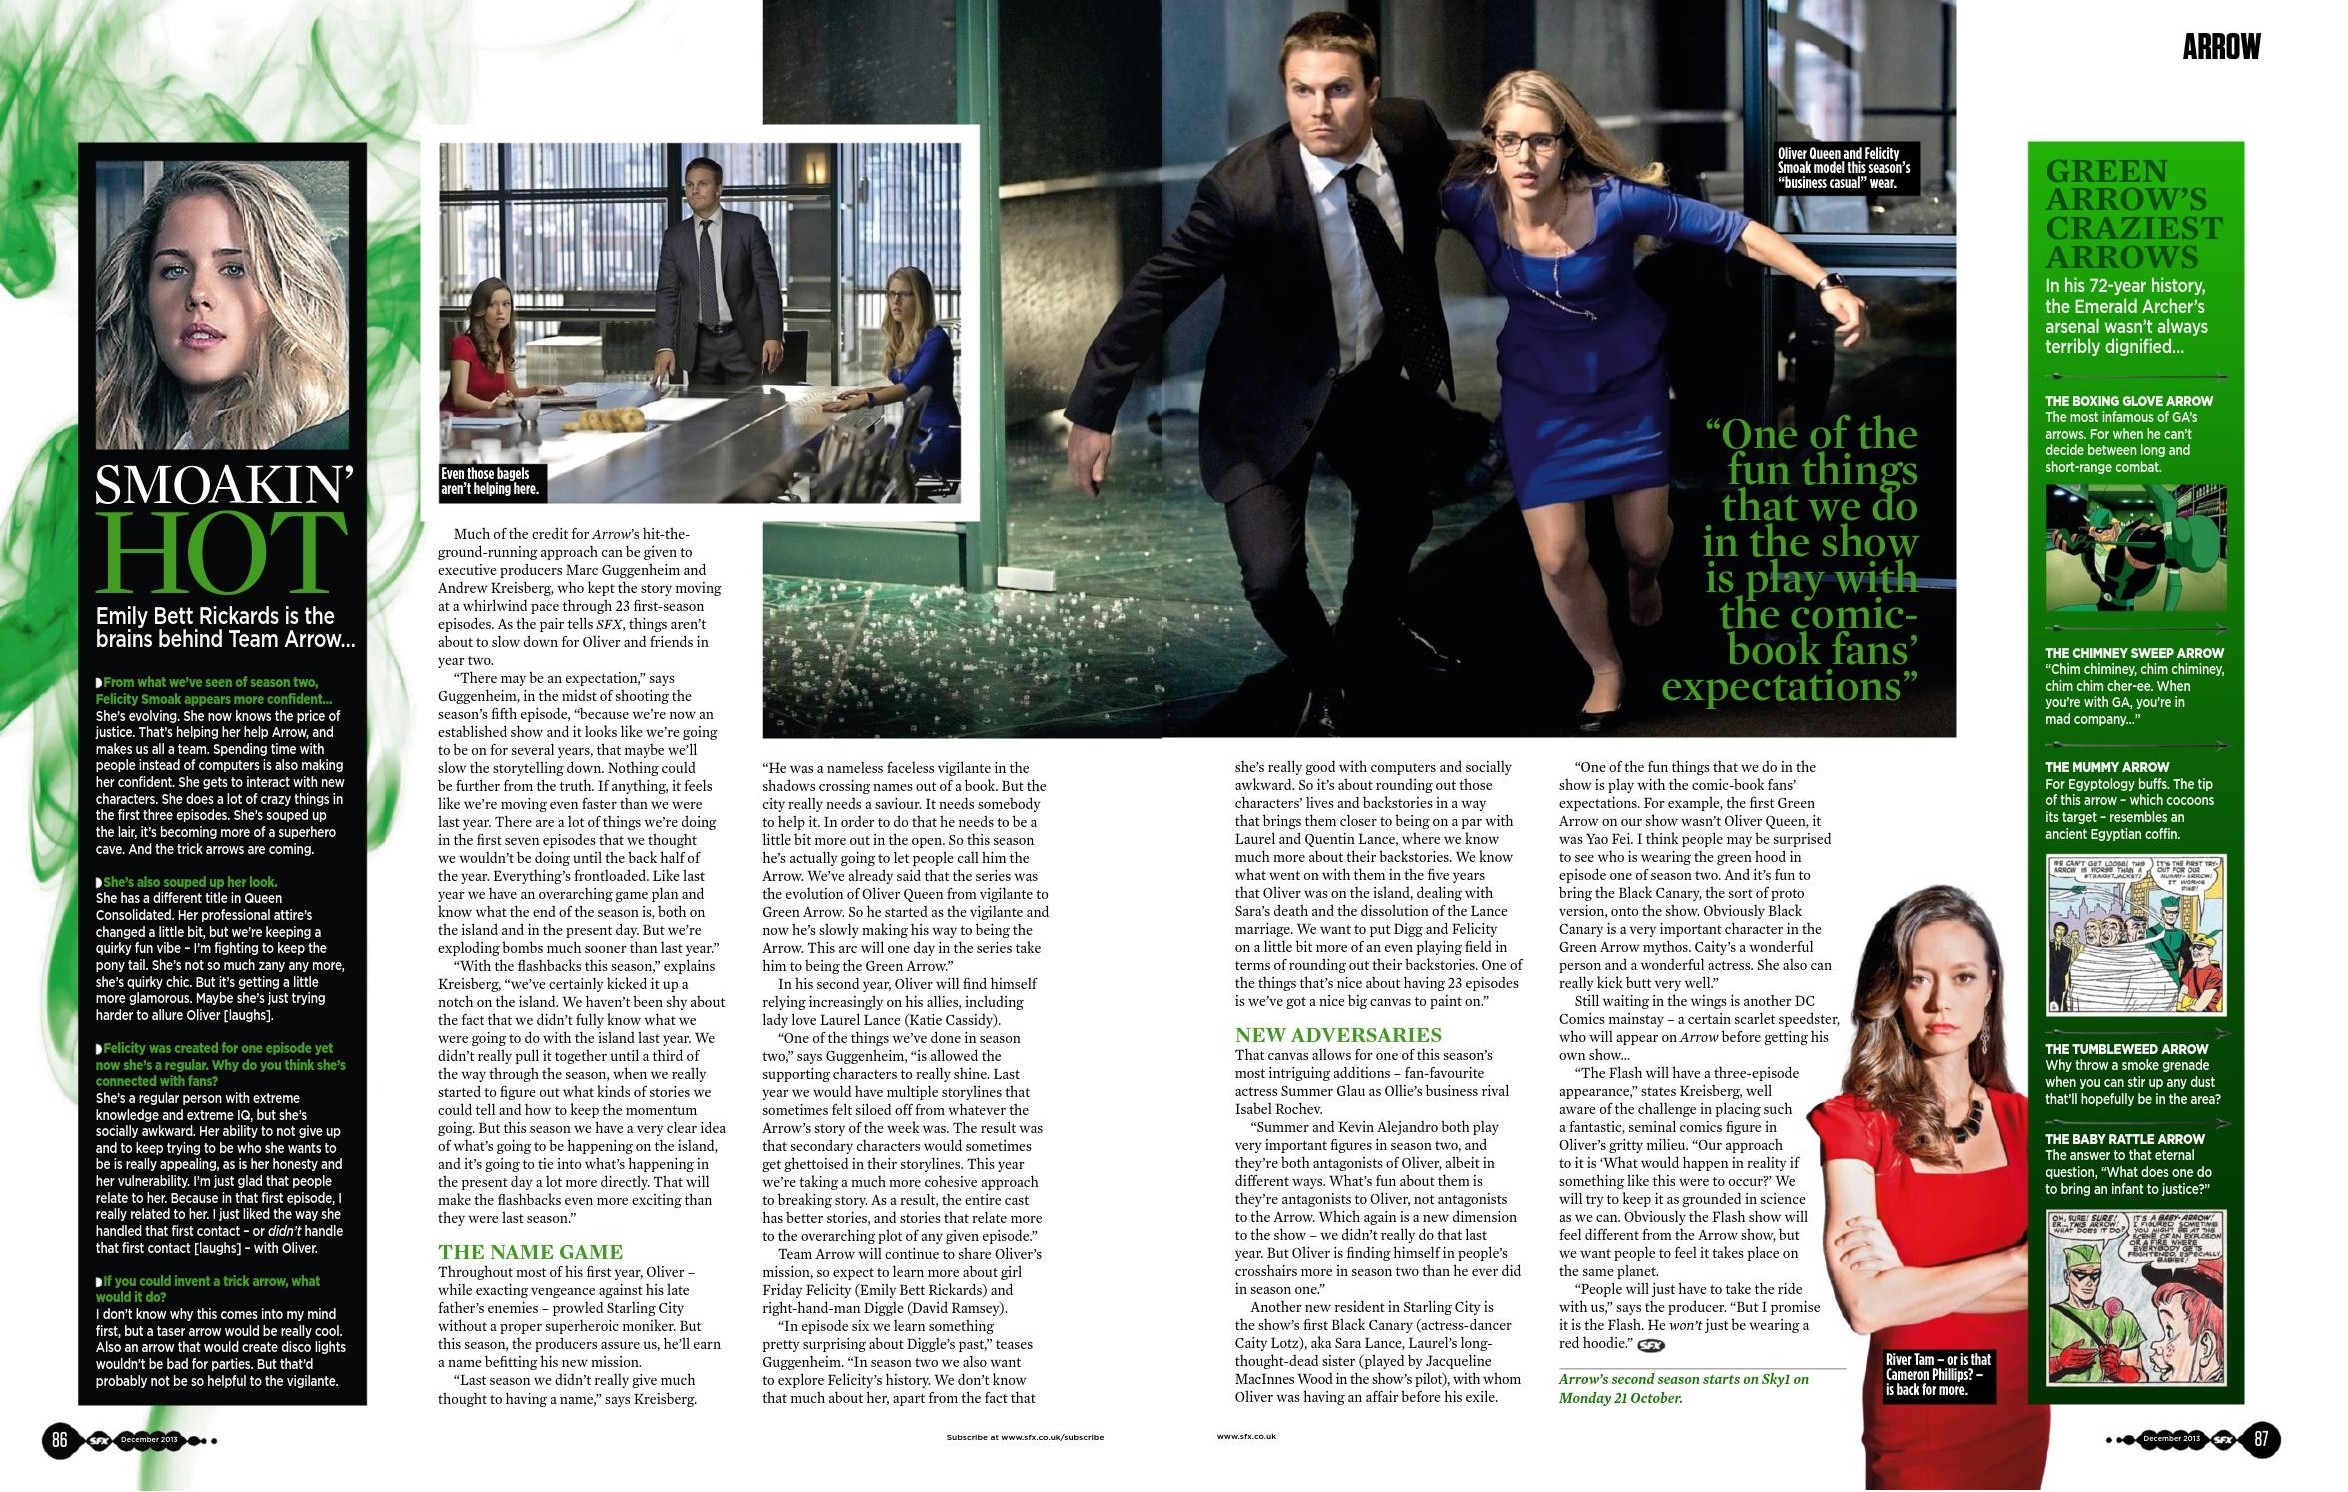 SFX mag (Dec 2013) - ARROW/アロー